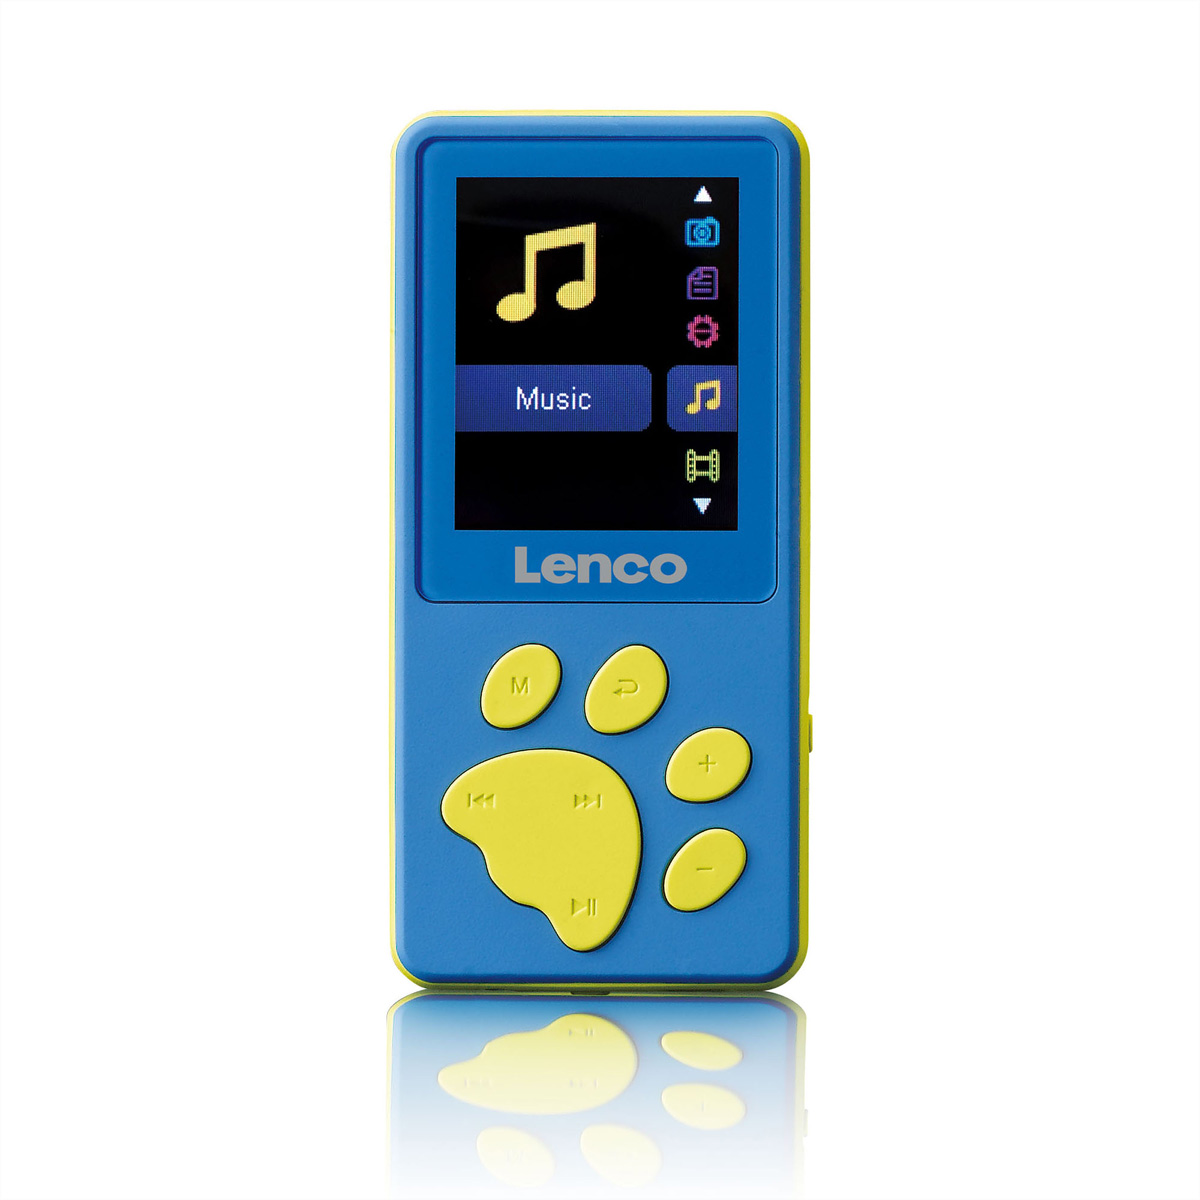 Lenco XEMIO-560 Kids MP4 Player, blau, SD Slot, Kopfhörer